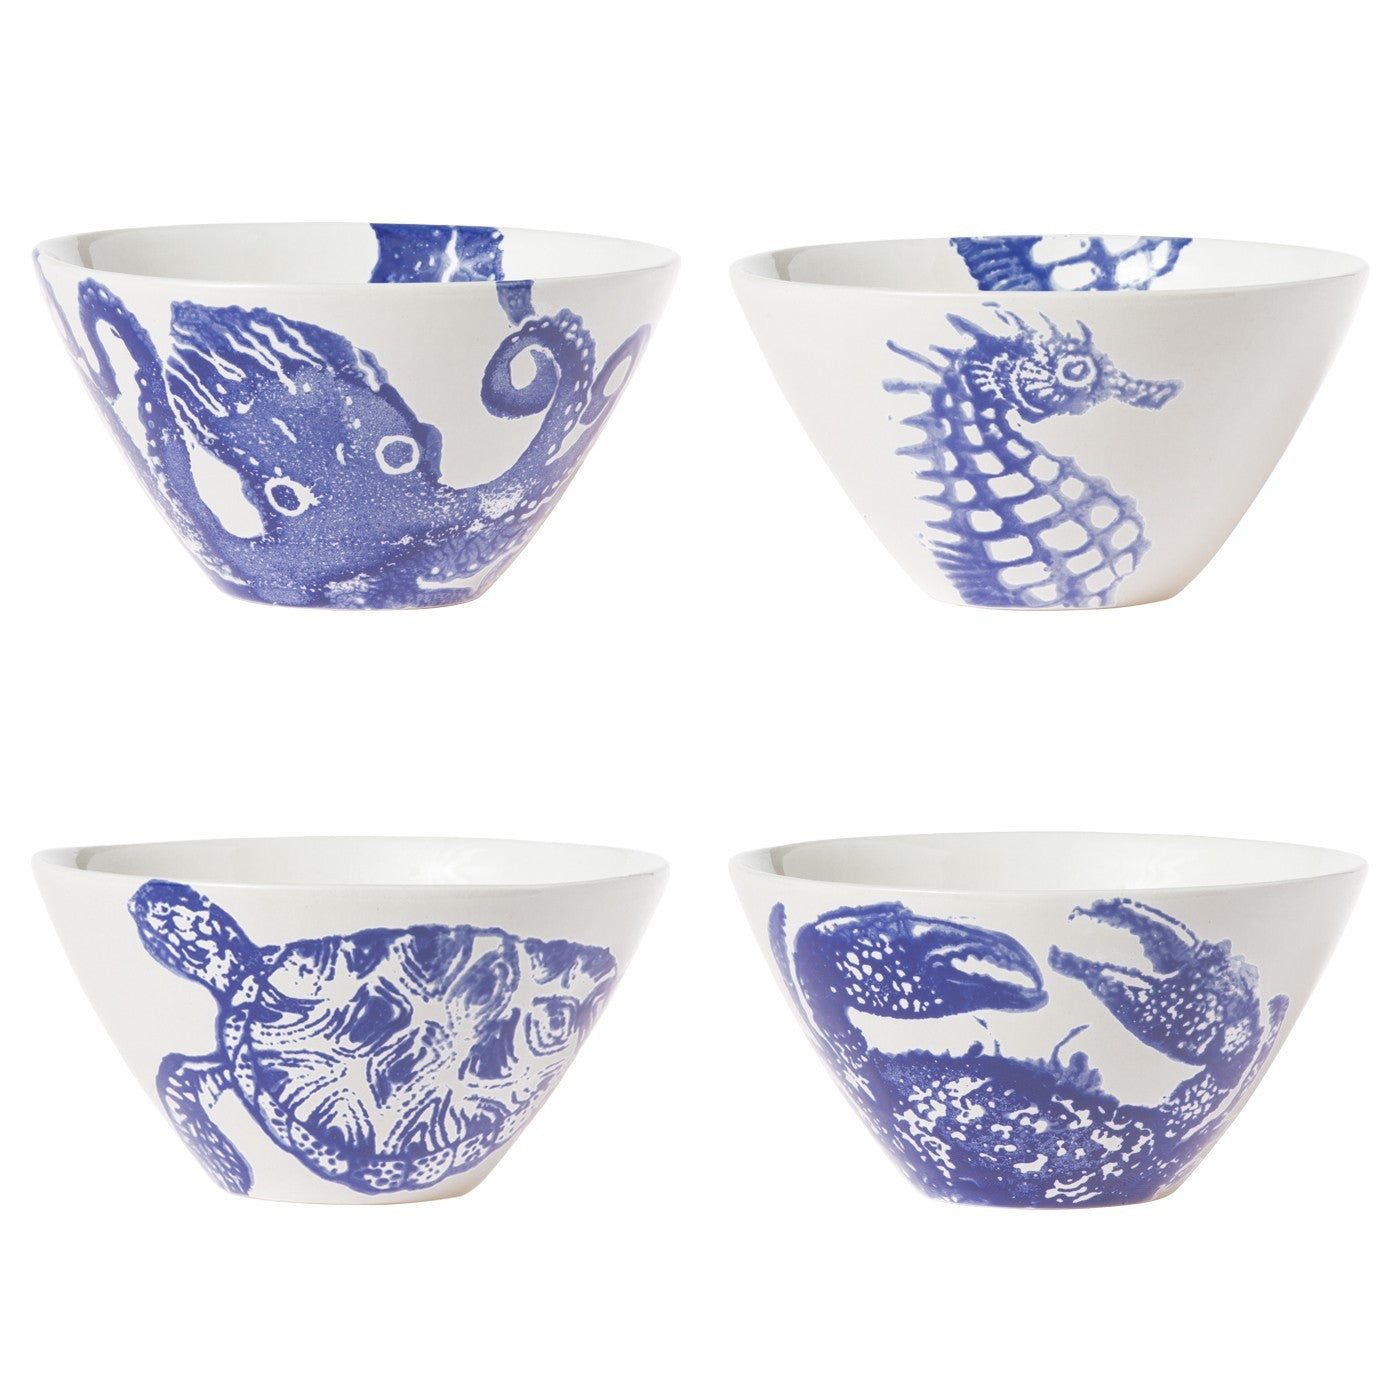 Costiera Assorted Blue Cereal Bowls (Set of 4)